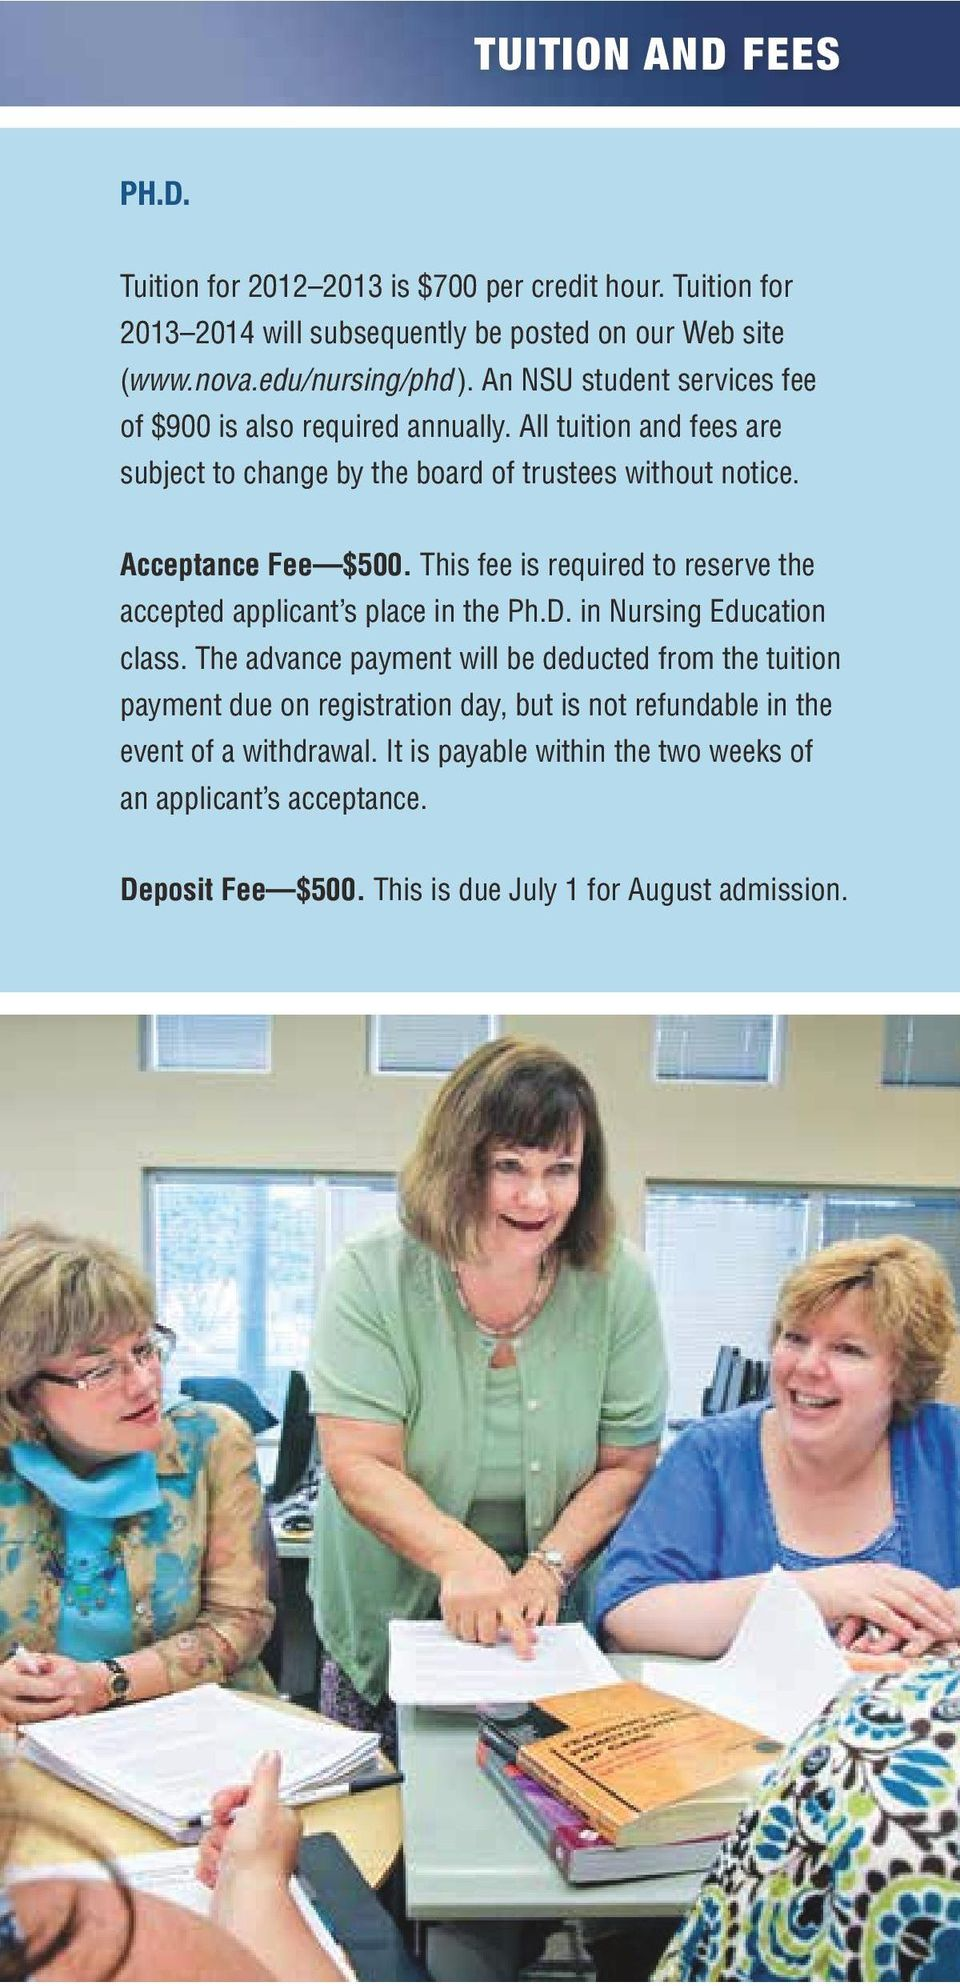 This fee is required to reserve the accepted applicant s place in the Ph.D. in Nursing Education class.